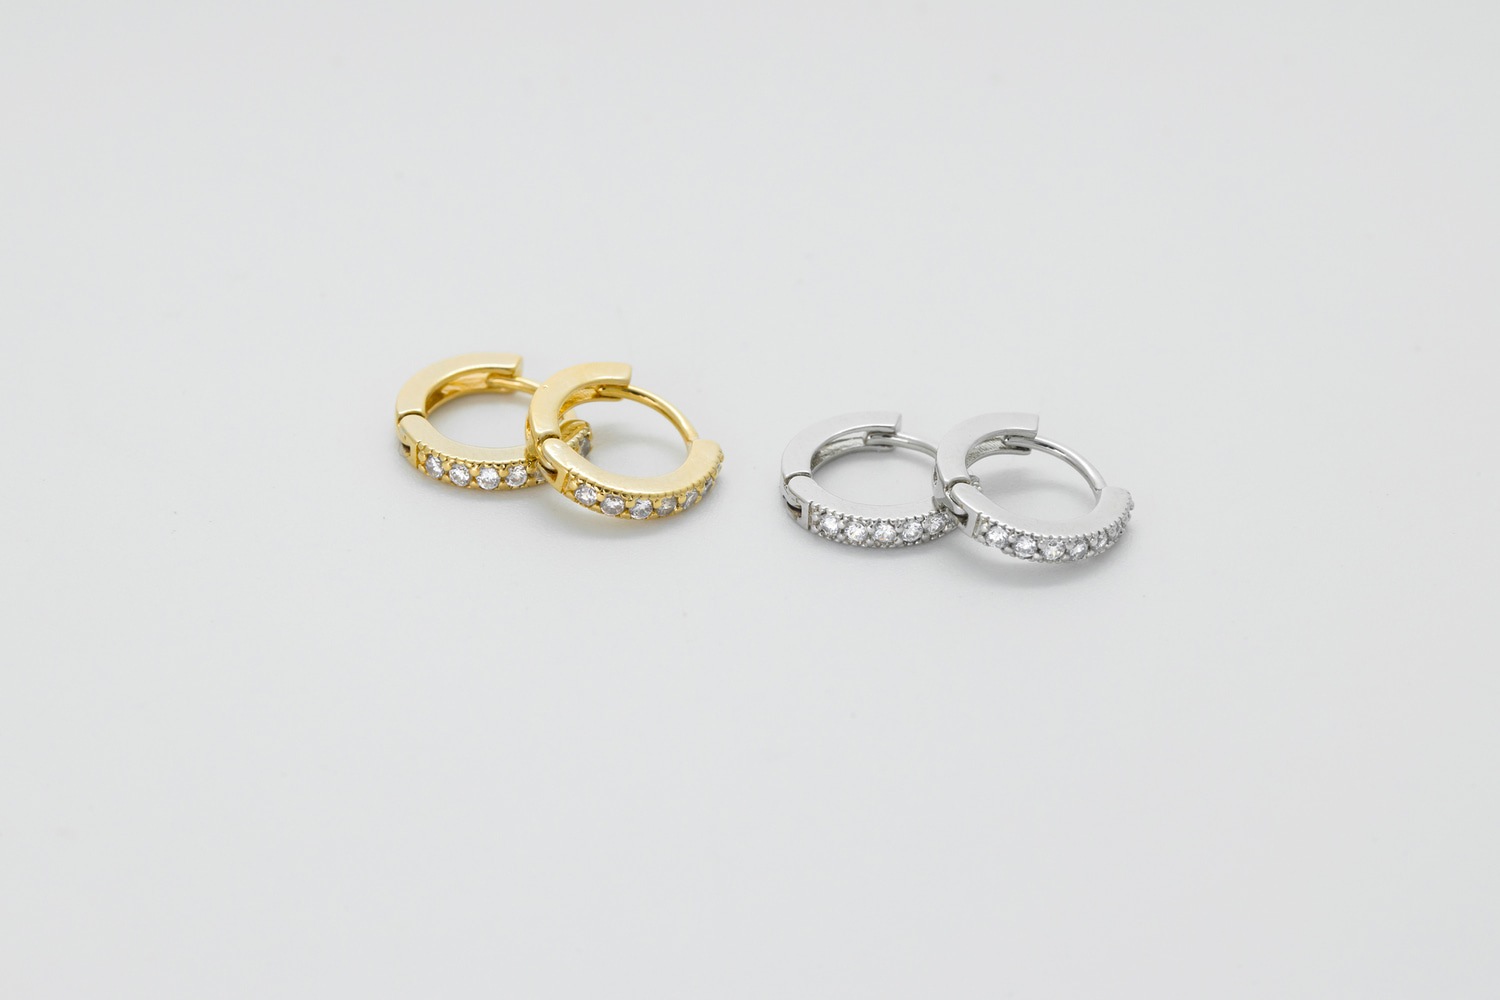 [EB20-27] Cubic lever back earrings, Brass, Nickel free, Handmade jewelry, Simple earrings, Minimal hoop, 2 pcs per style